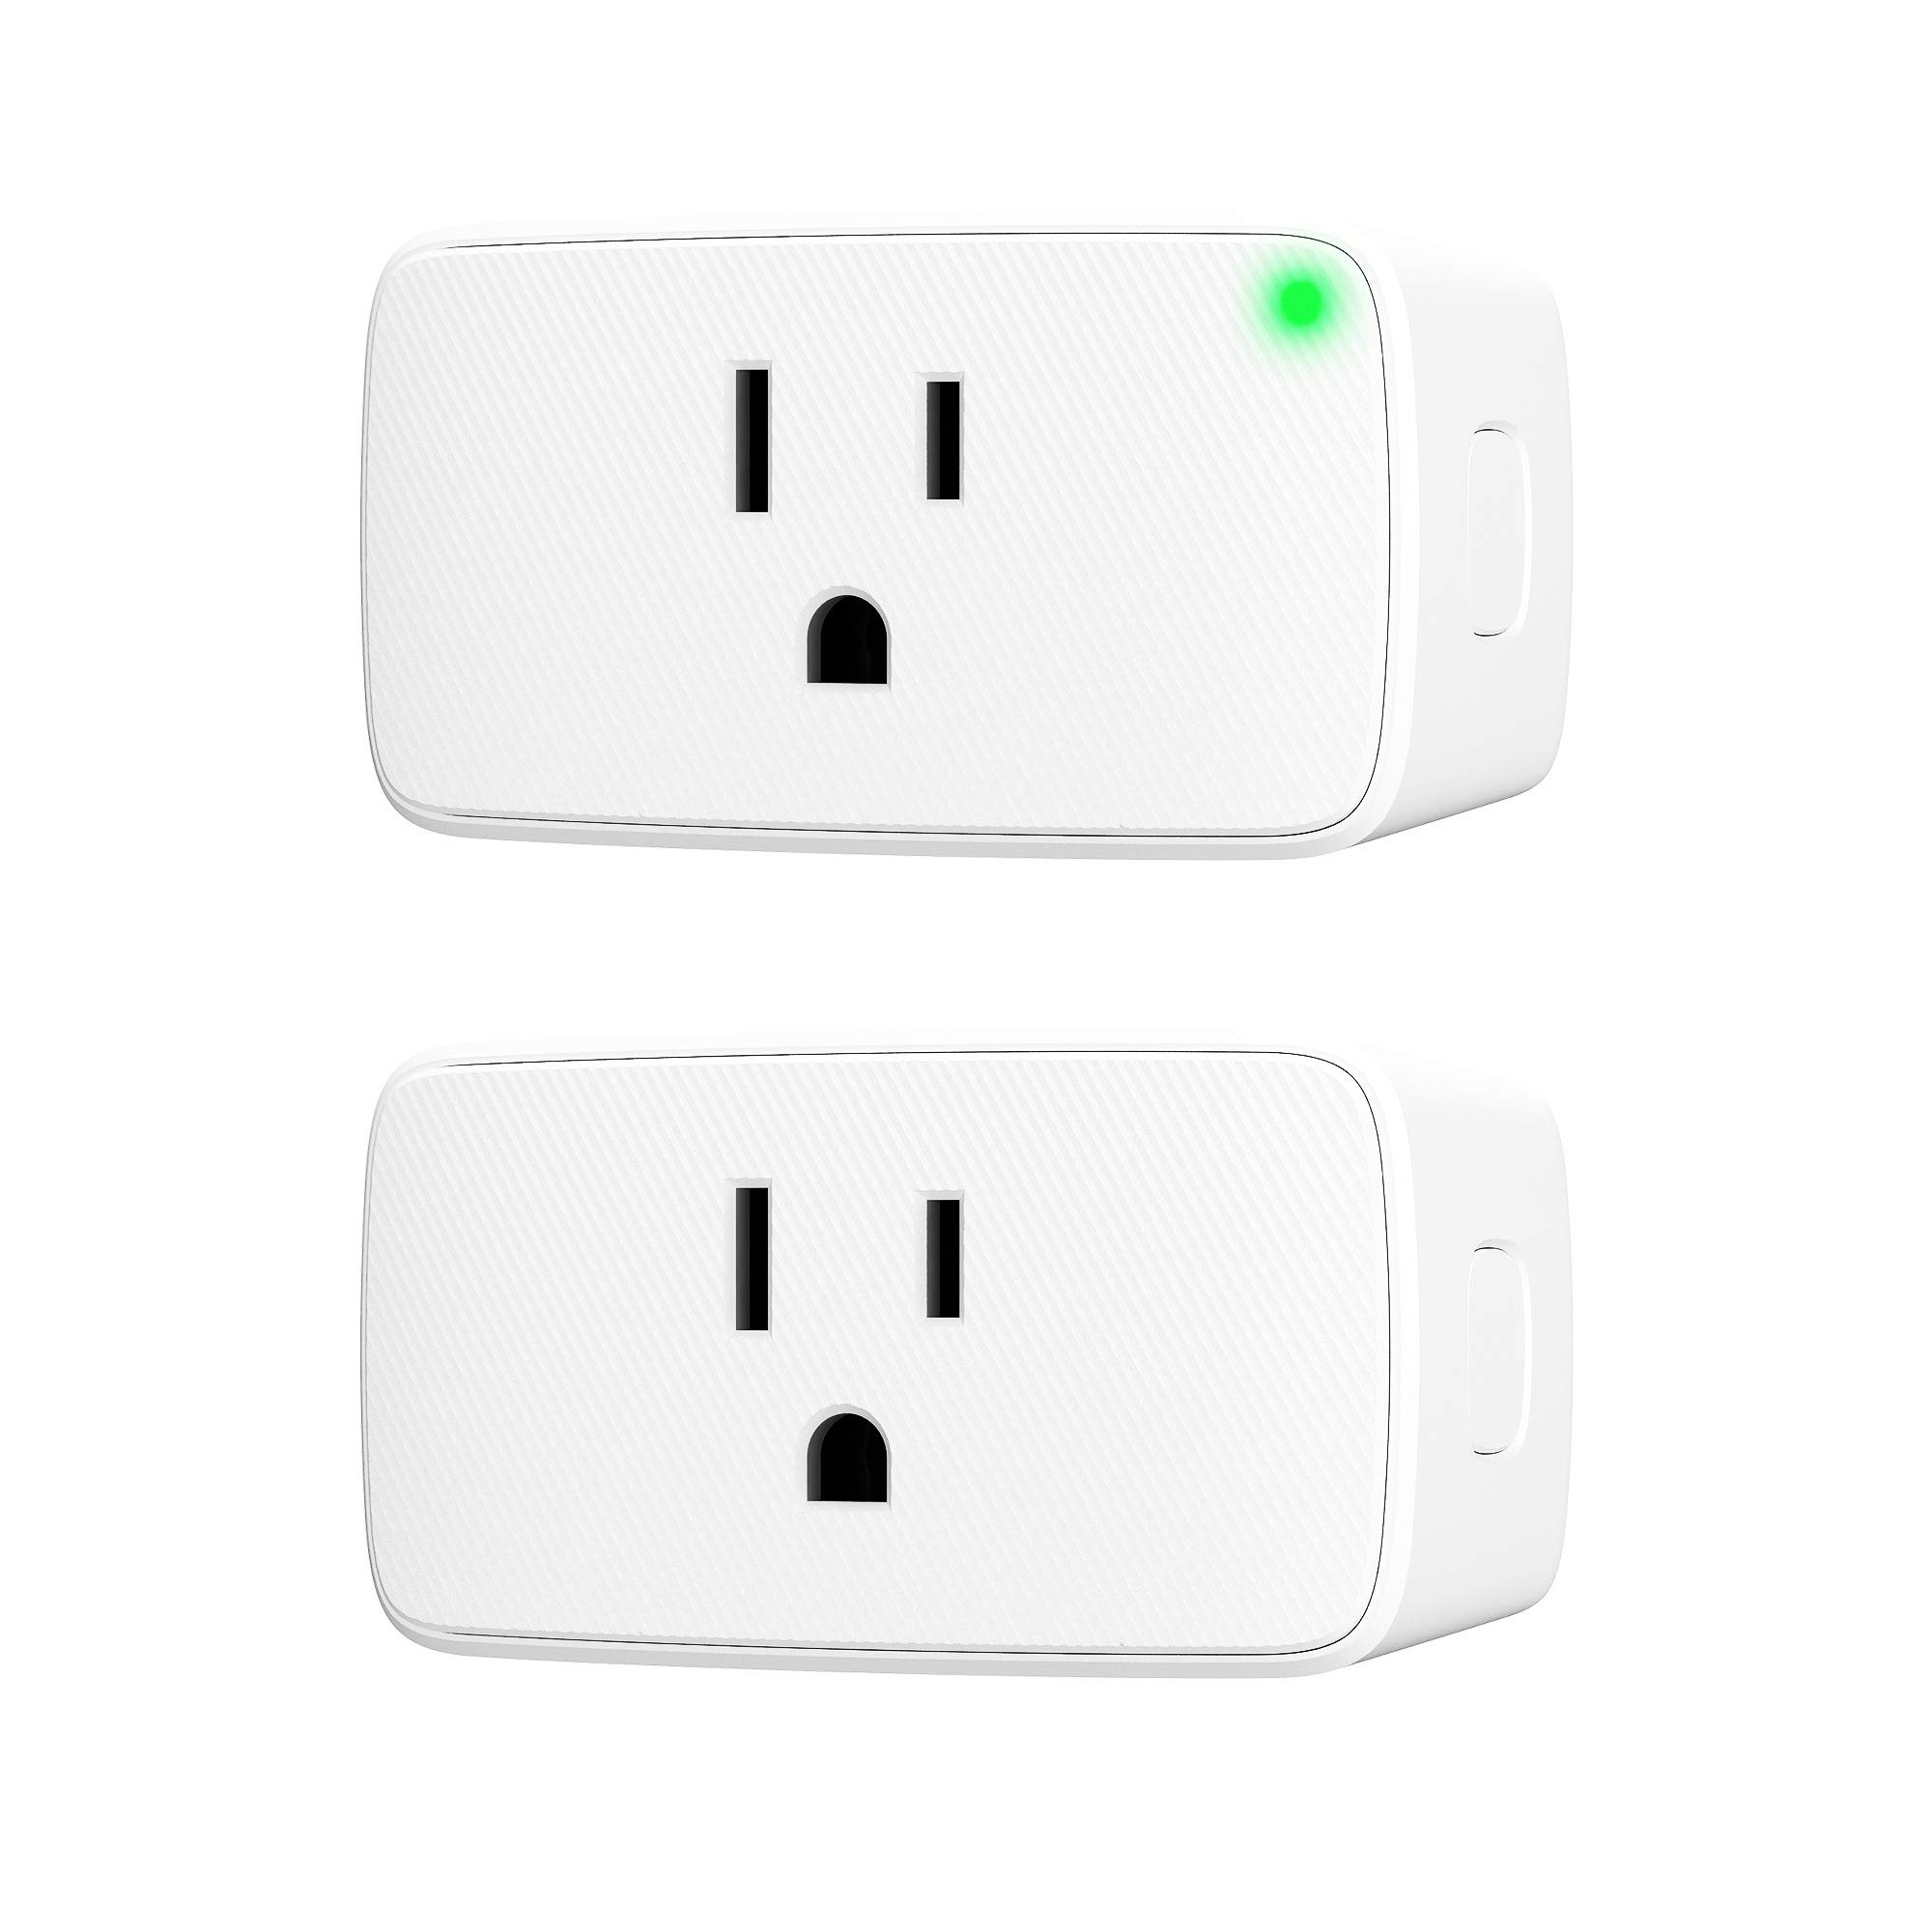 VOCOlinc Smart Plug, Wi-Fi Mini Outlet Socket, Works with HomeKit (iOS12 or +), Alexa & Google Assistant, Timer, No Hub Required, 15A 1800W, 2.4GHz, Smartbar (2 Pack)